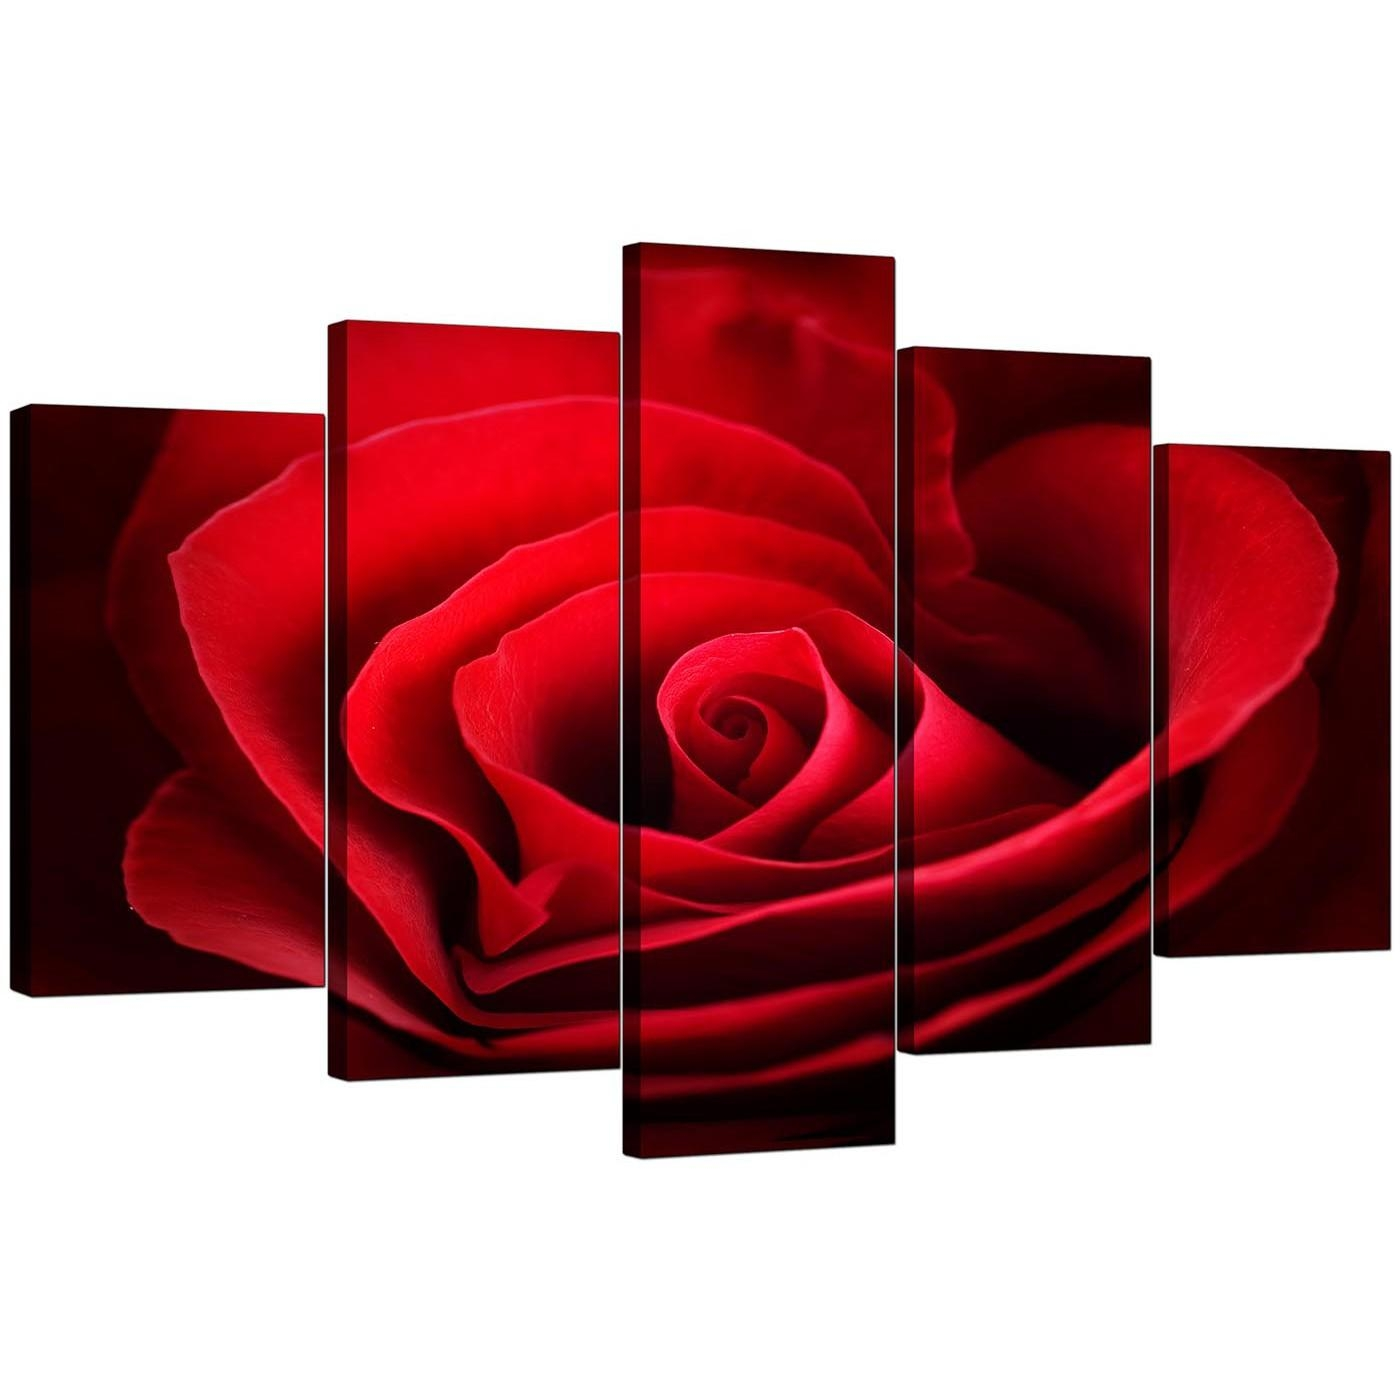 Extra Large Rose Canvas Wall Art 5 Panel In Red Inside Rose Canvas Wall Art (View 2 of 20)